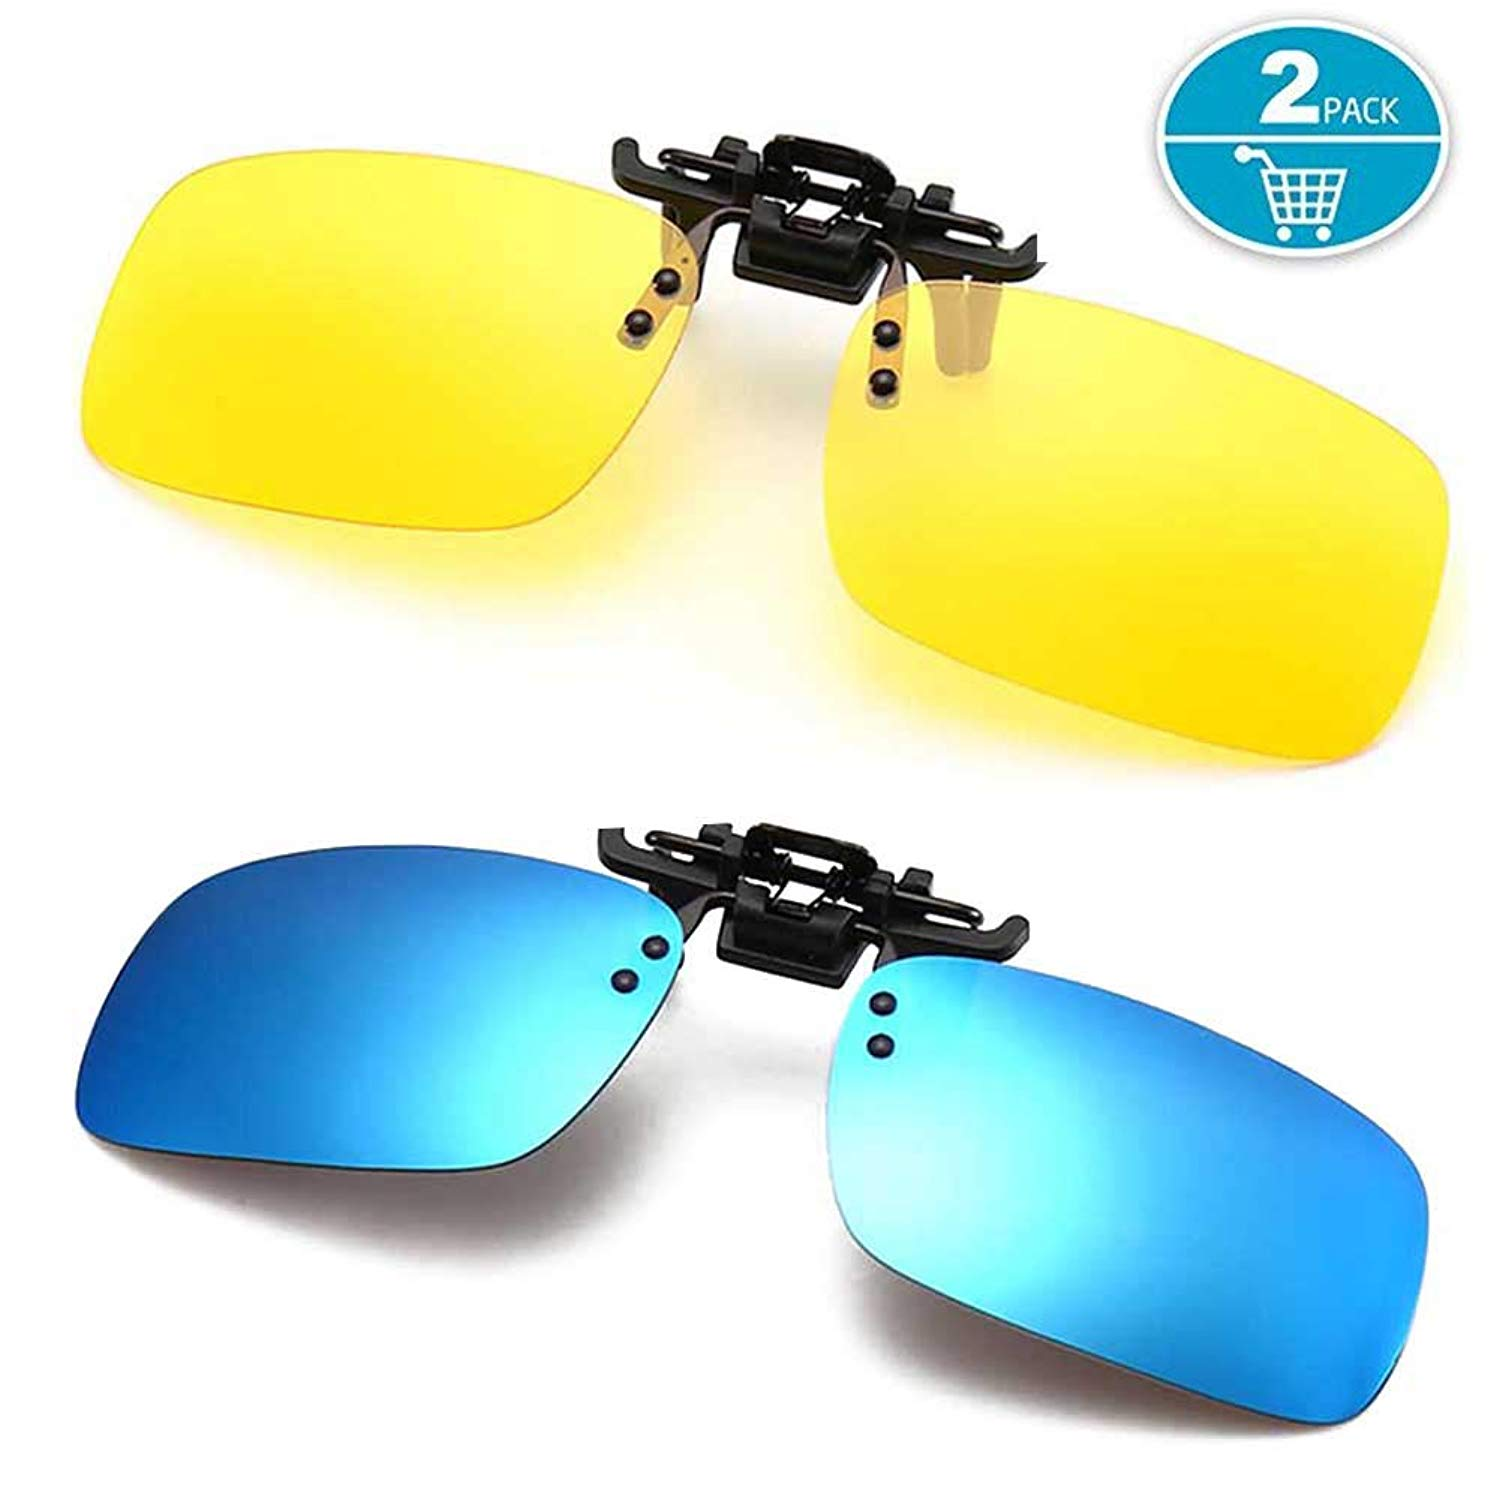 3cc304b0774a Get Quotations · Polarized Clip-on Sunglasses Anti-Glare Driving Glasses  for Prescription Glasses